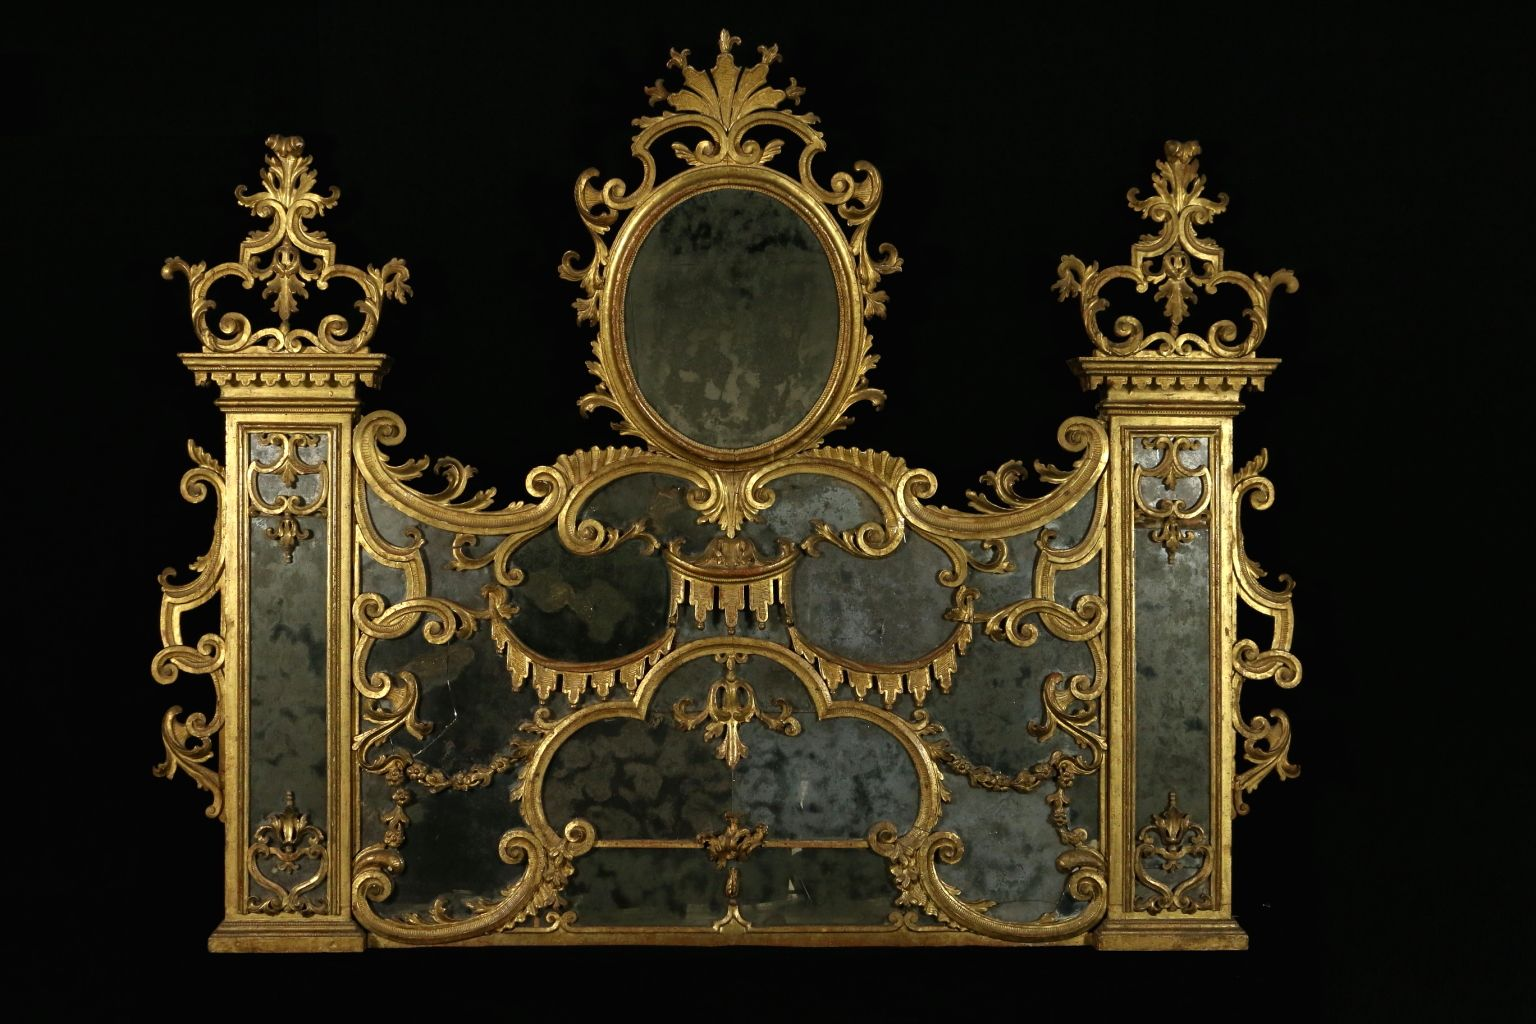 Antique baroque linden carved and gilded hearth mirror for for Gilded baroque mirror